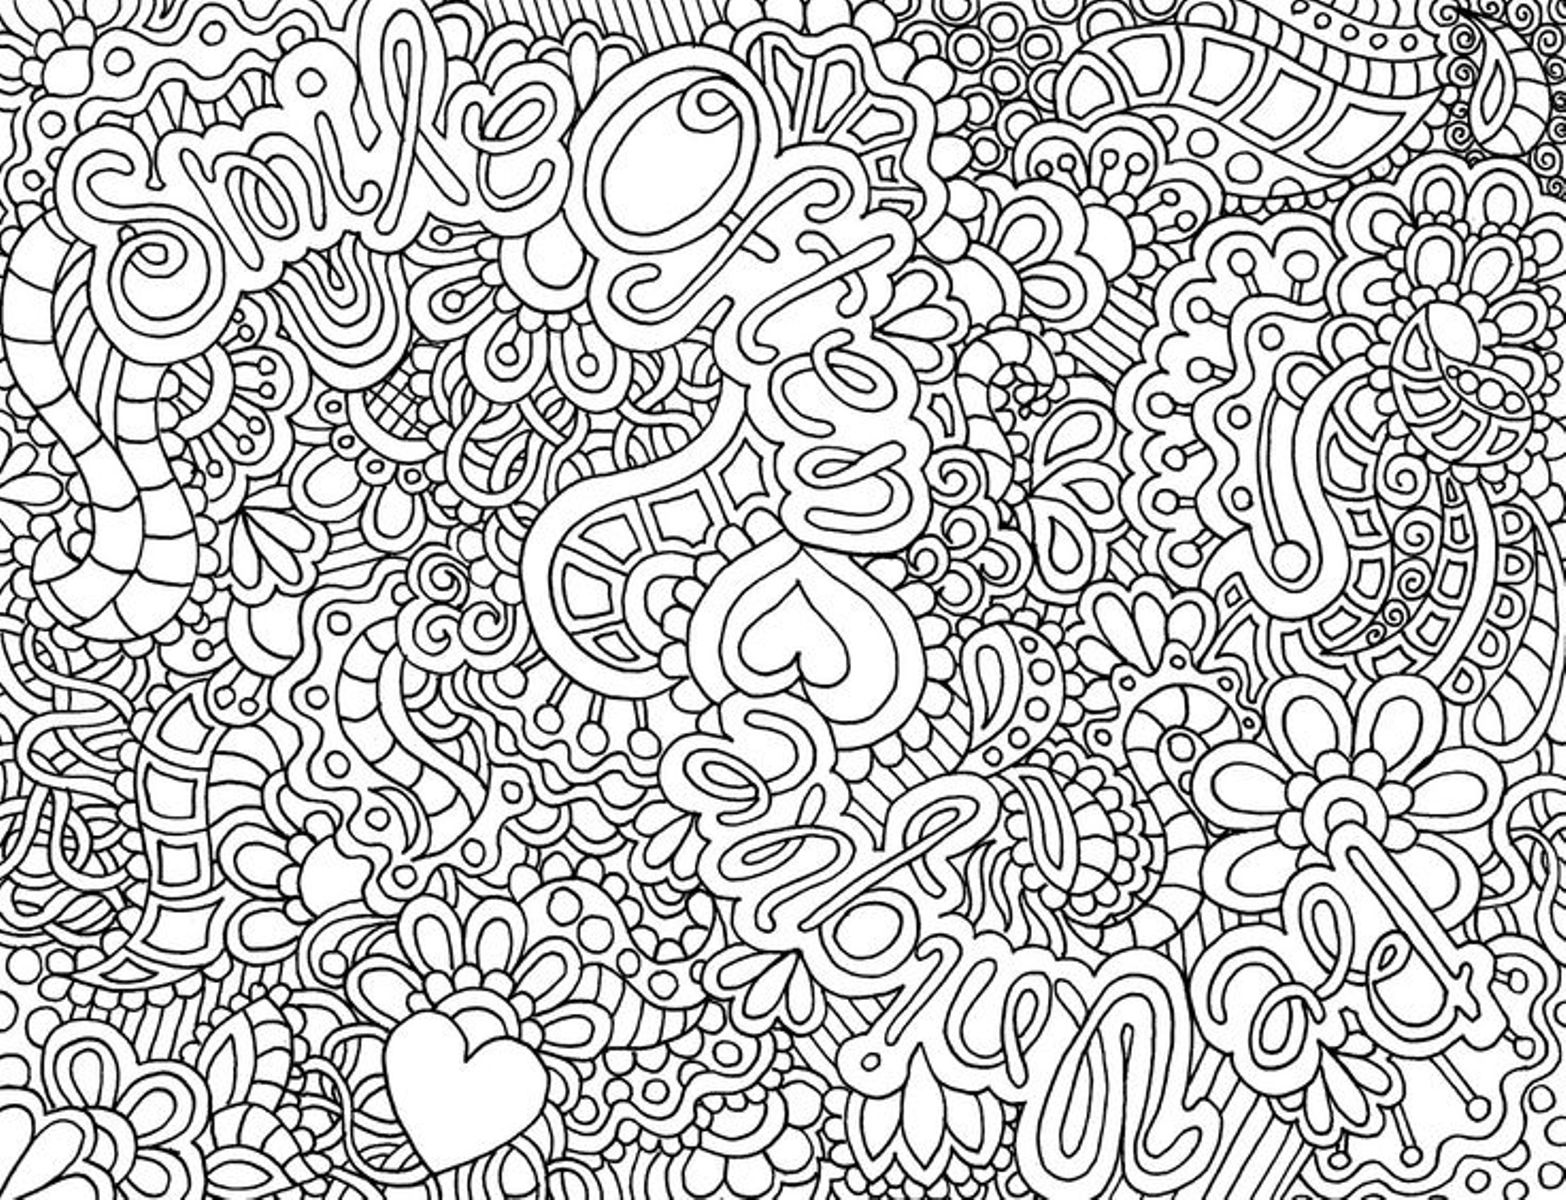 detailed coloring pages - Coliring Pages